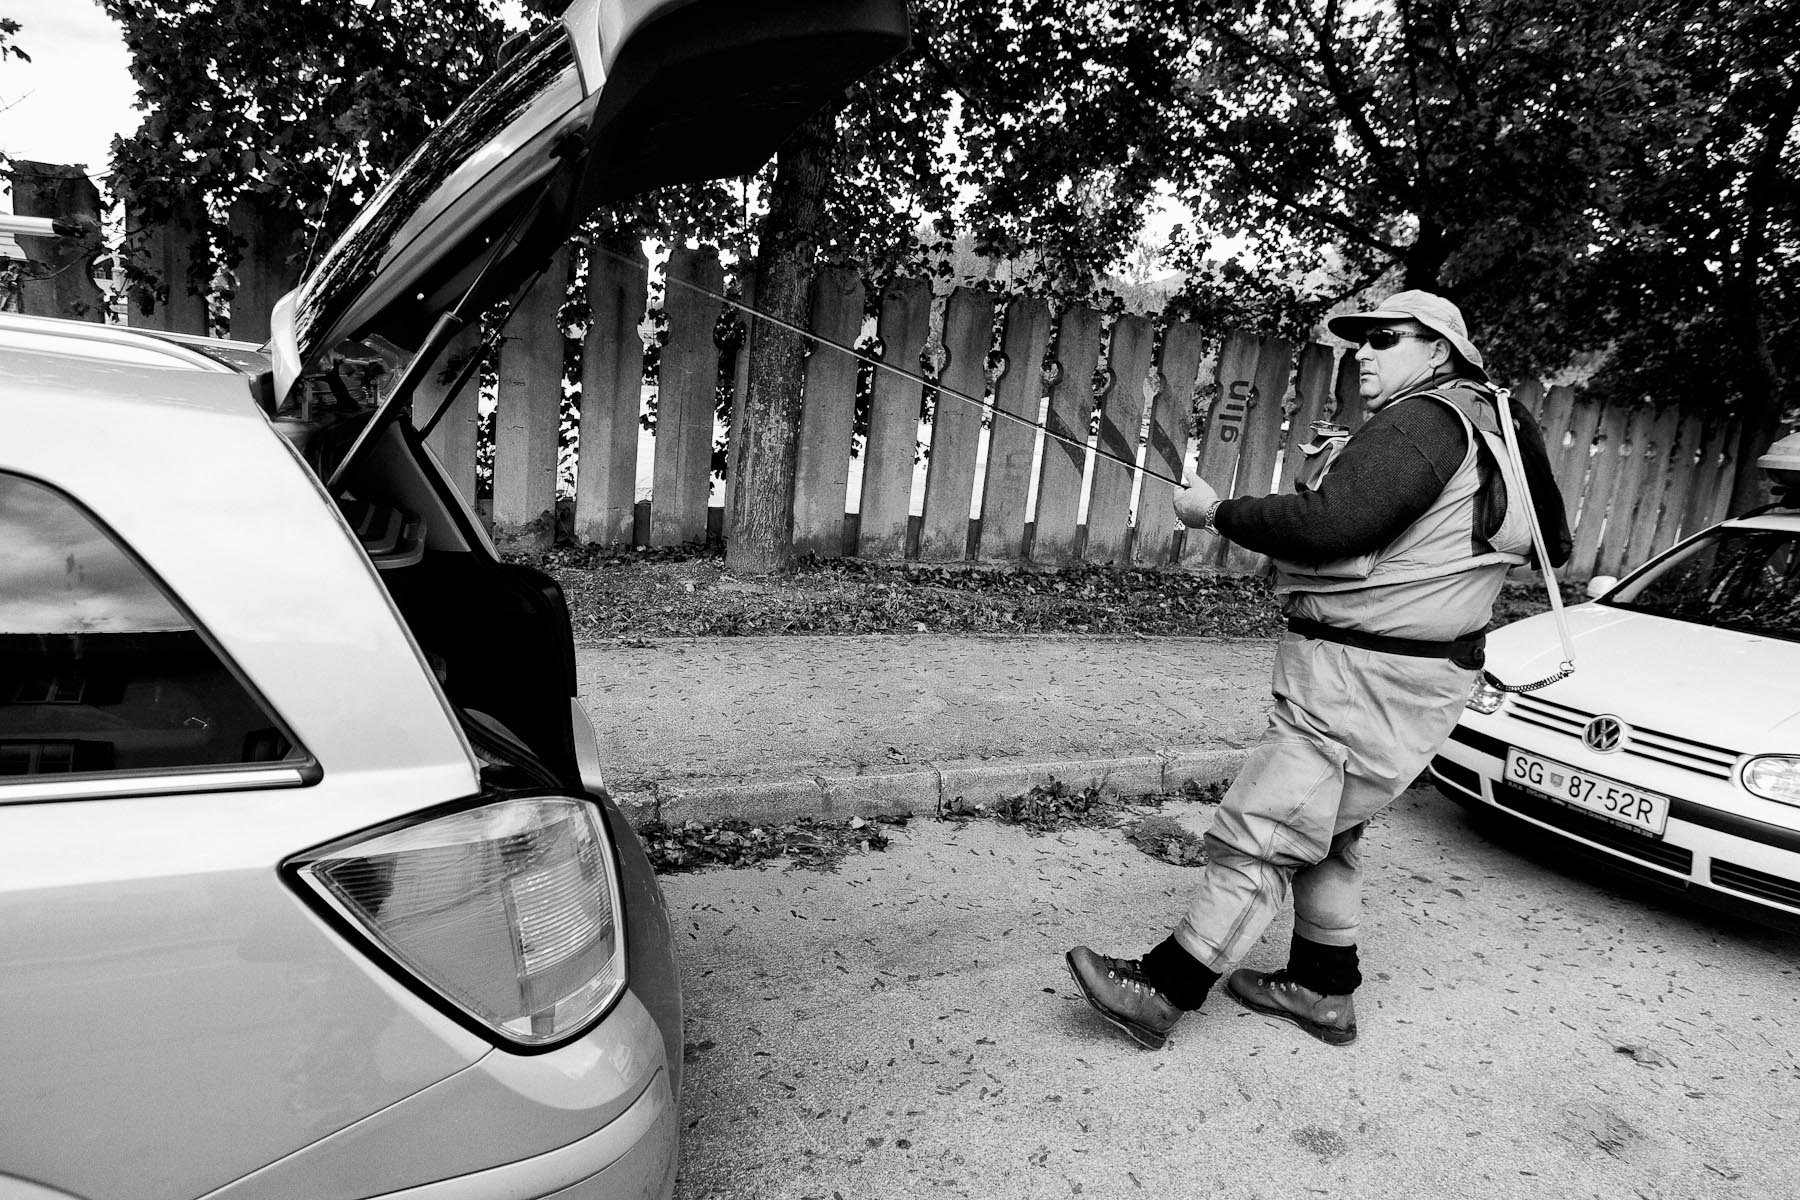 Dušan Dolinar takes the fishing rod out of his car as he arrives to his sector at the National Fly Fishing Championship competition in Mozirje, Slovenia, October 9, 2011.